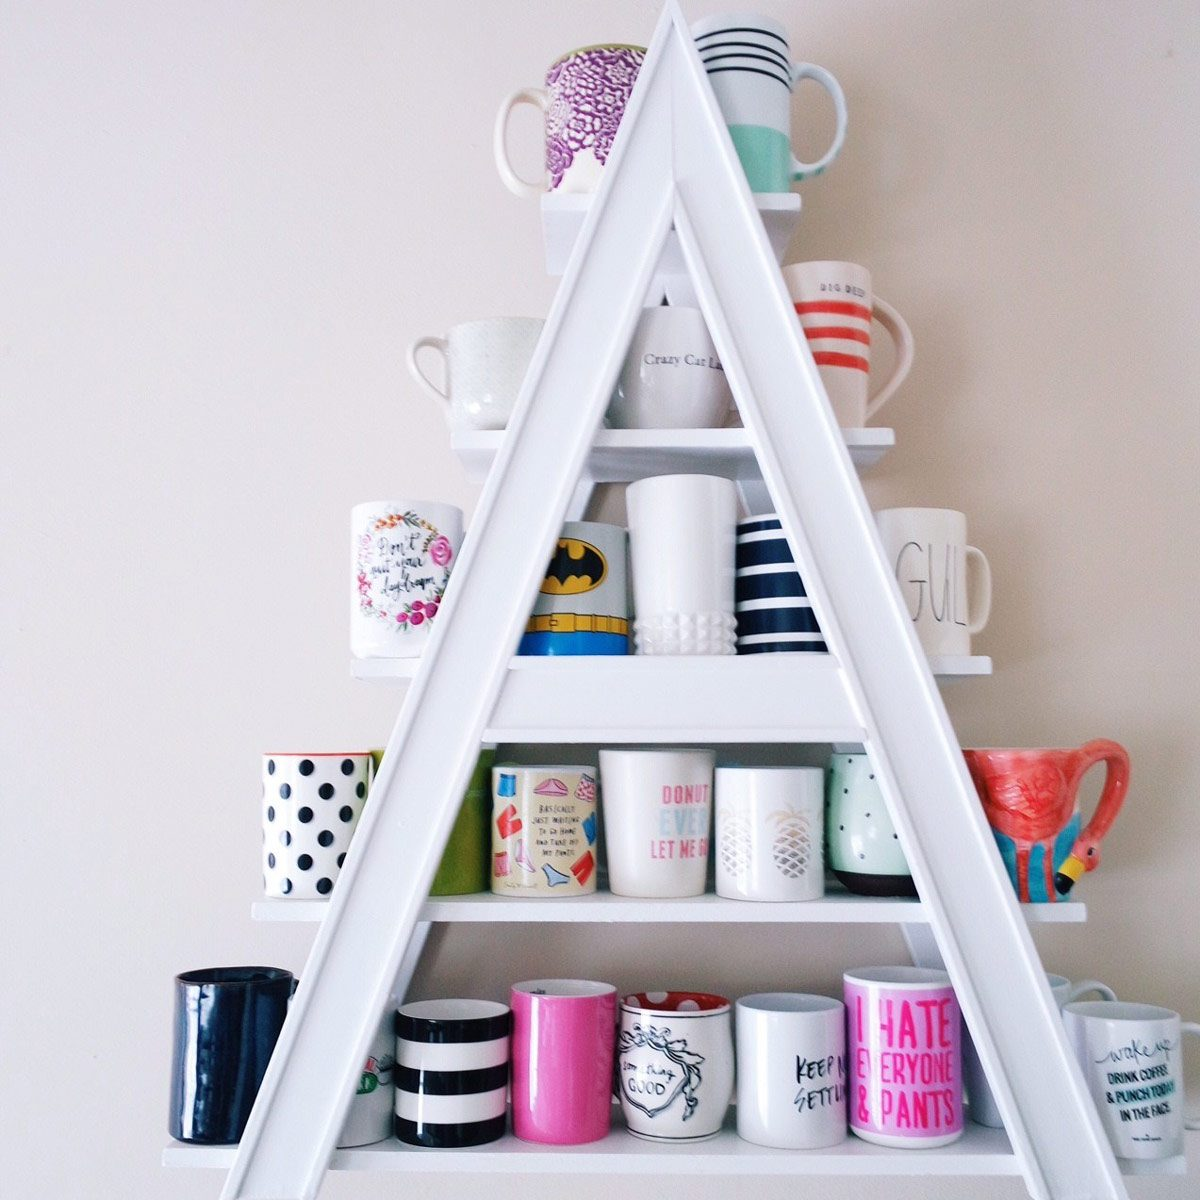 Ikea Kitchen Ideas And Inspiration 12 Handy Diy Mug Tree And Display Ideas The Family Handyman